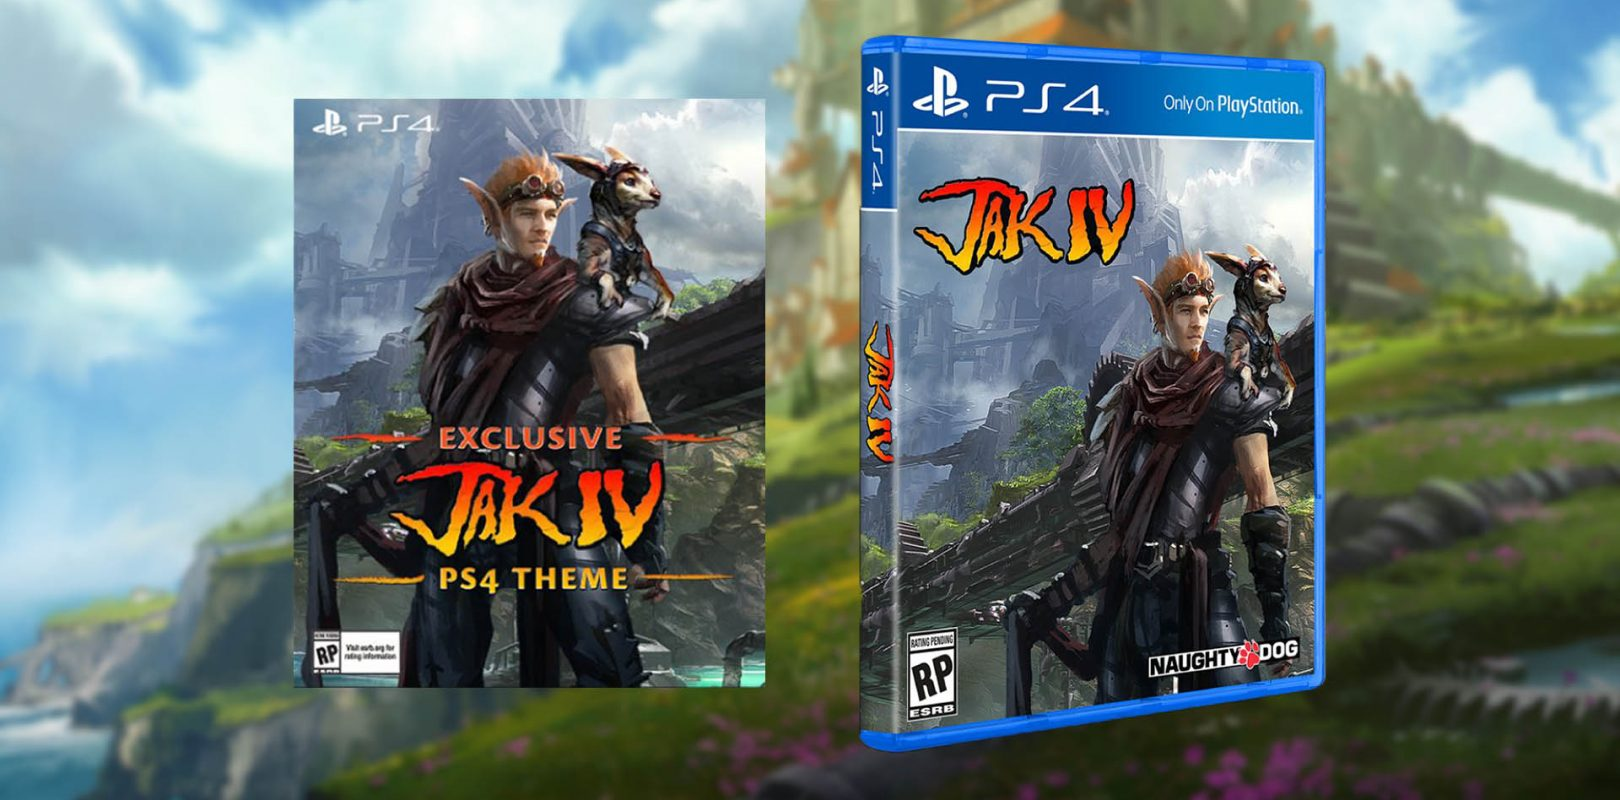 Limited Run Games Has Announced An Exclusive Jak IV Collector's Case – But There Is A Catch